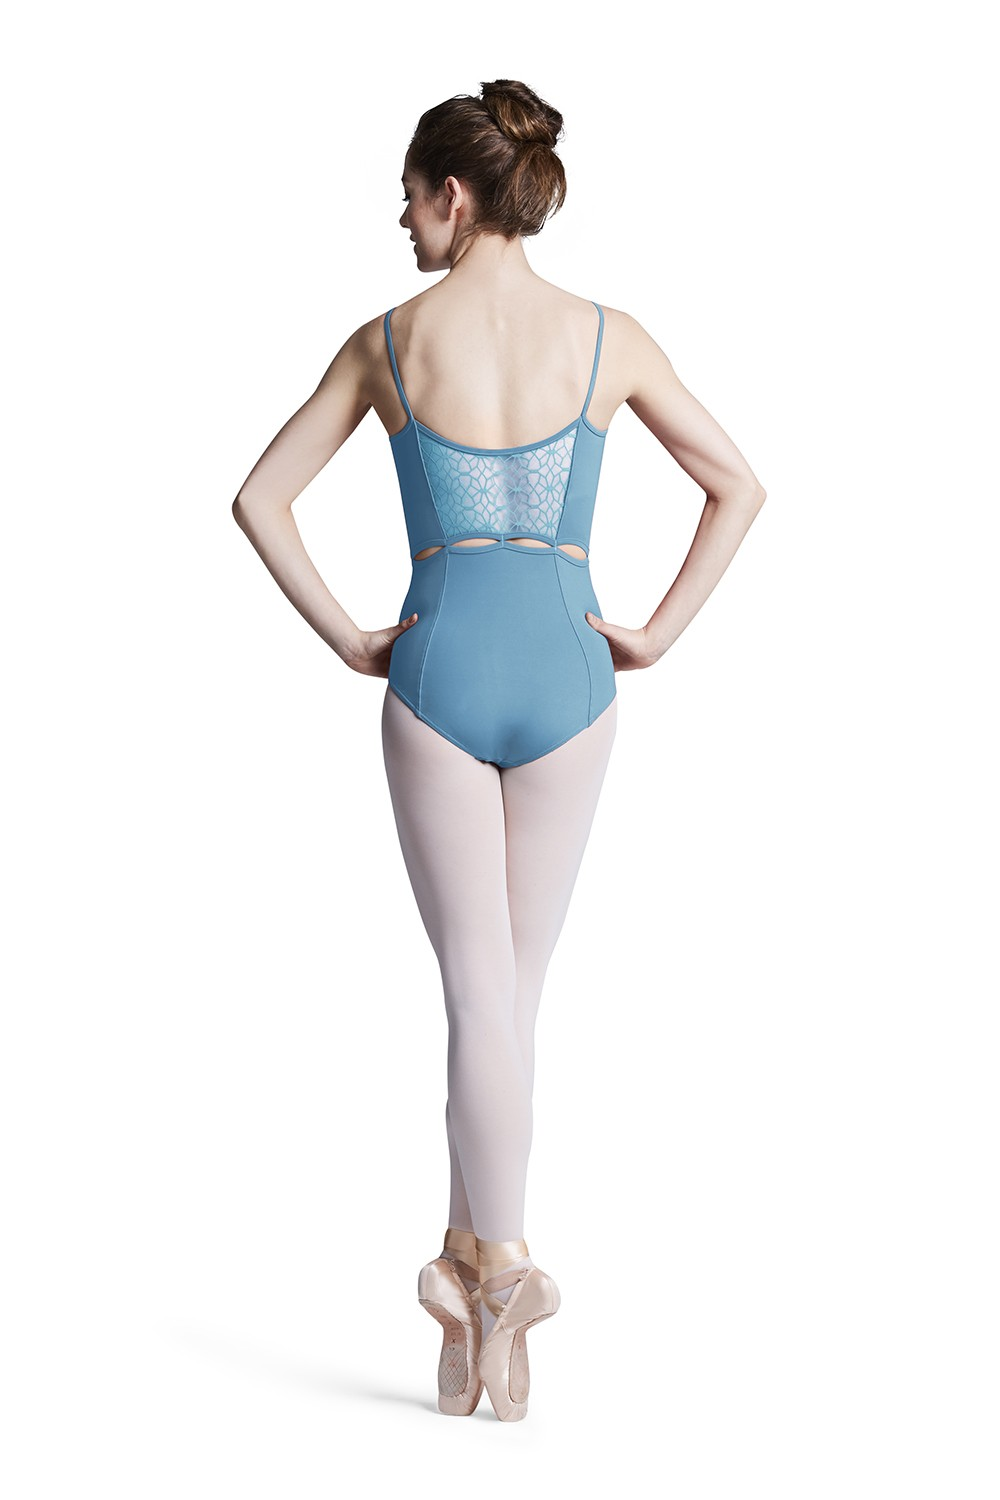 Lunete Women's Dance Leotards